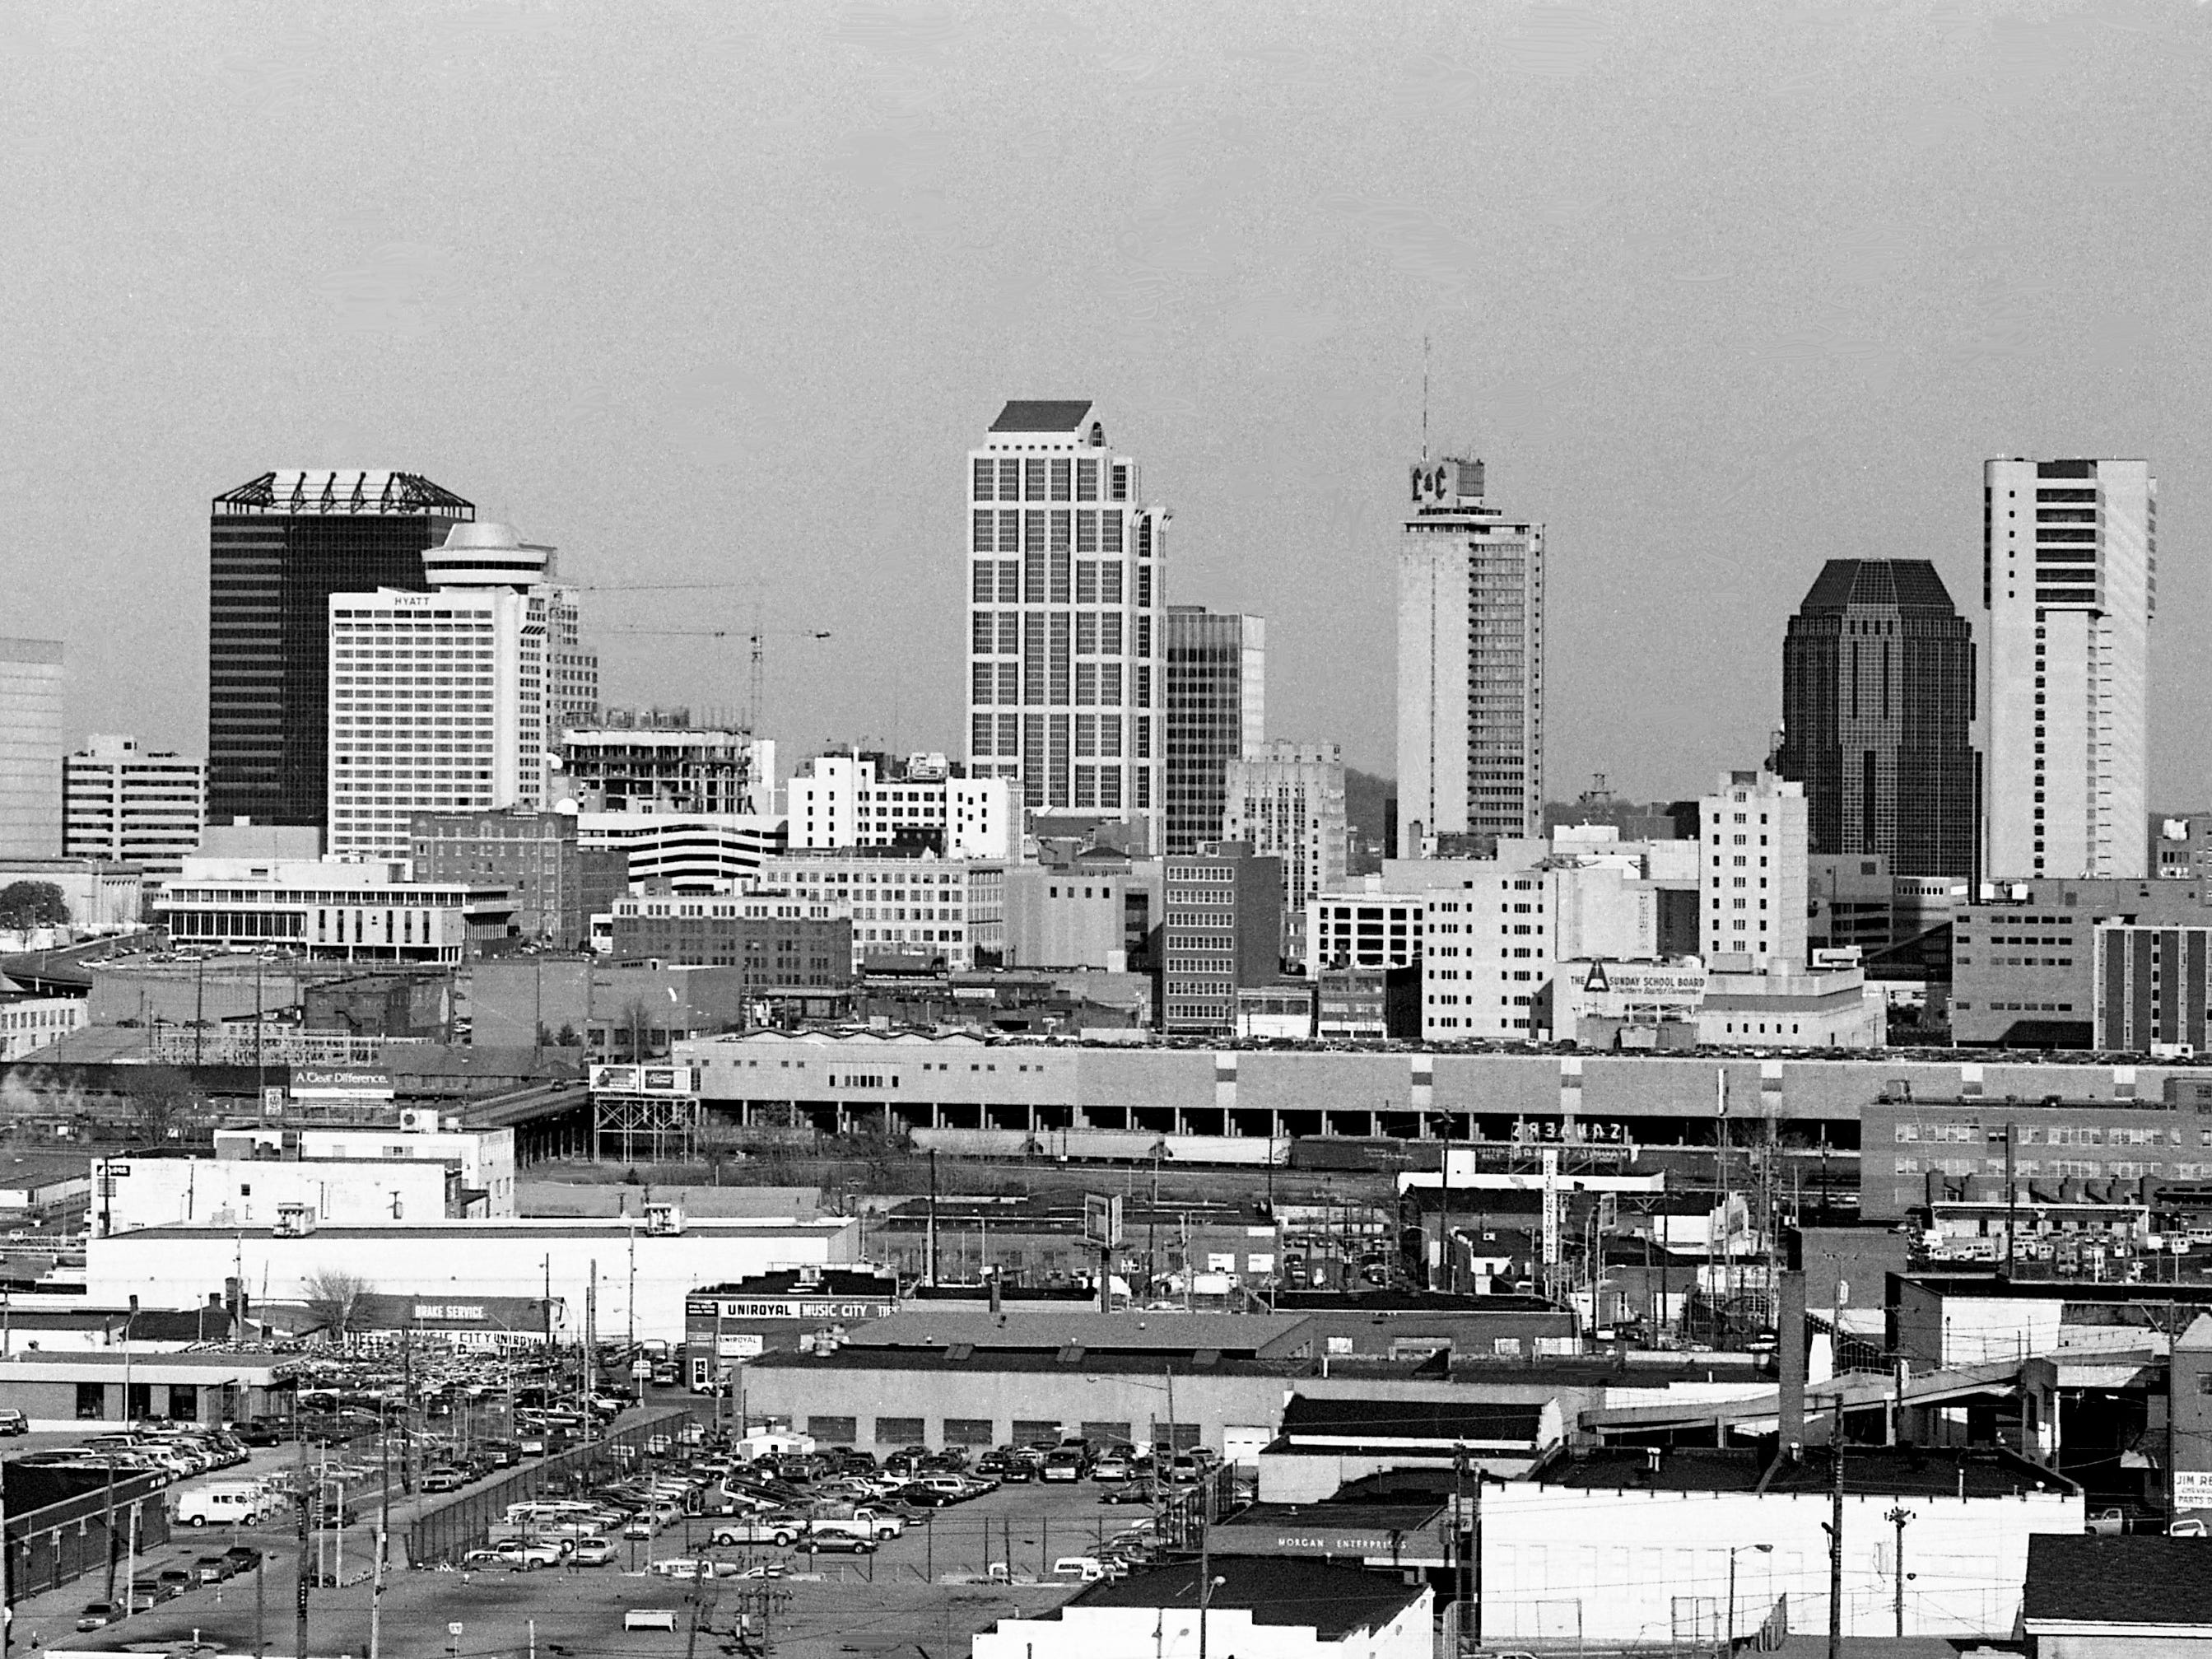 A view of the skyline of the downtown Nashville on a clear day Jan. 5, 1988 from the top of the 1808 West End Ave. building.